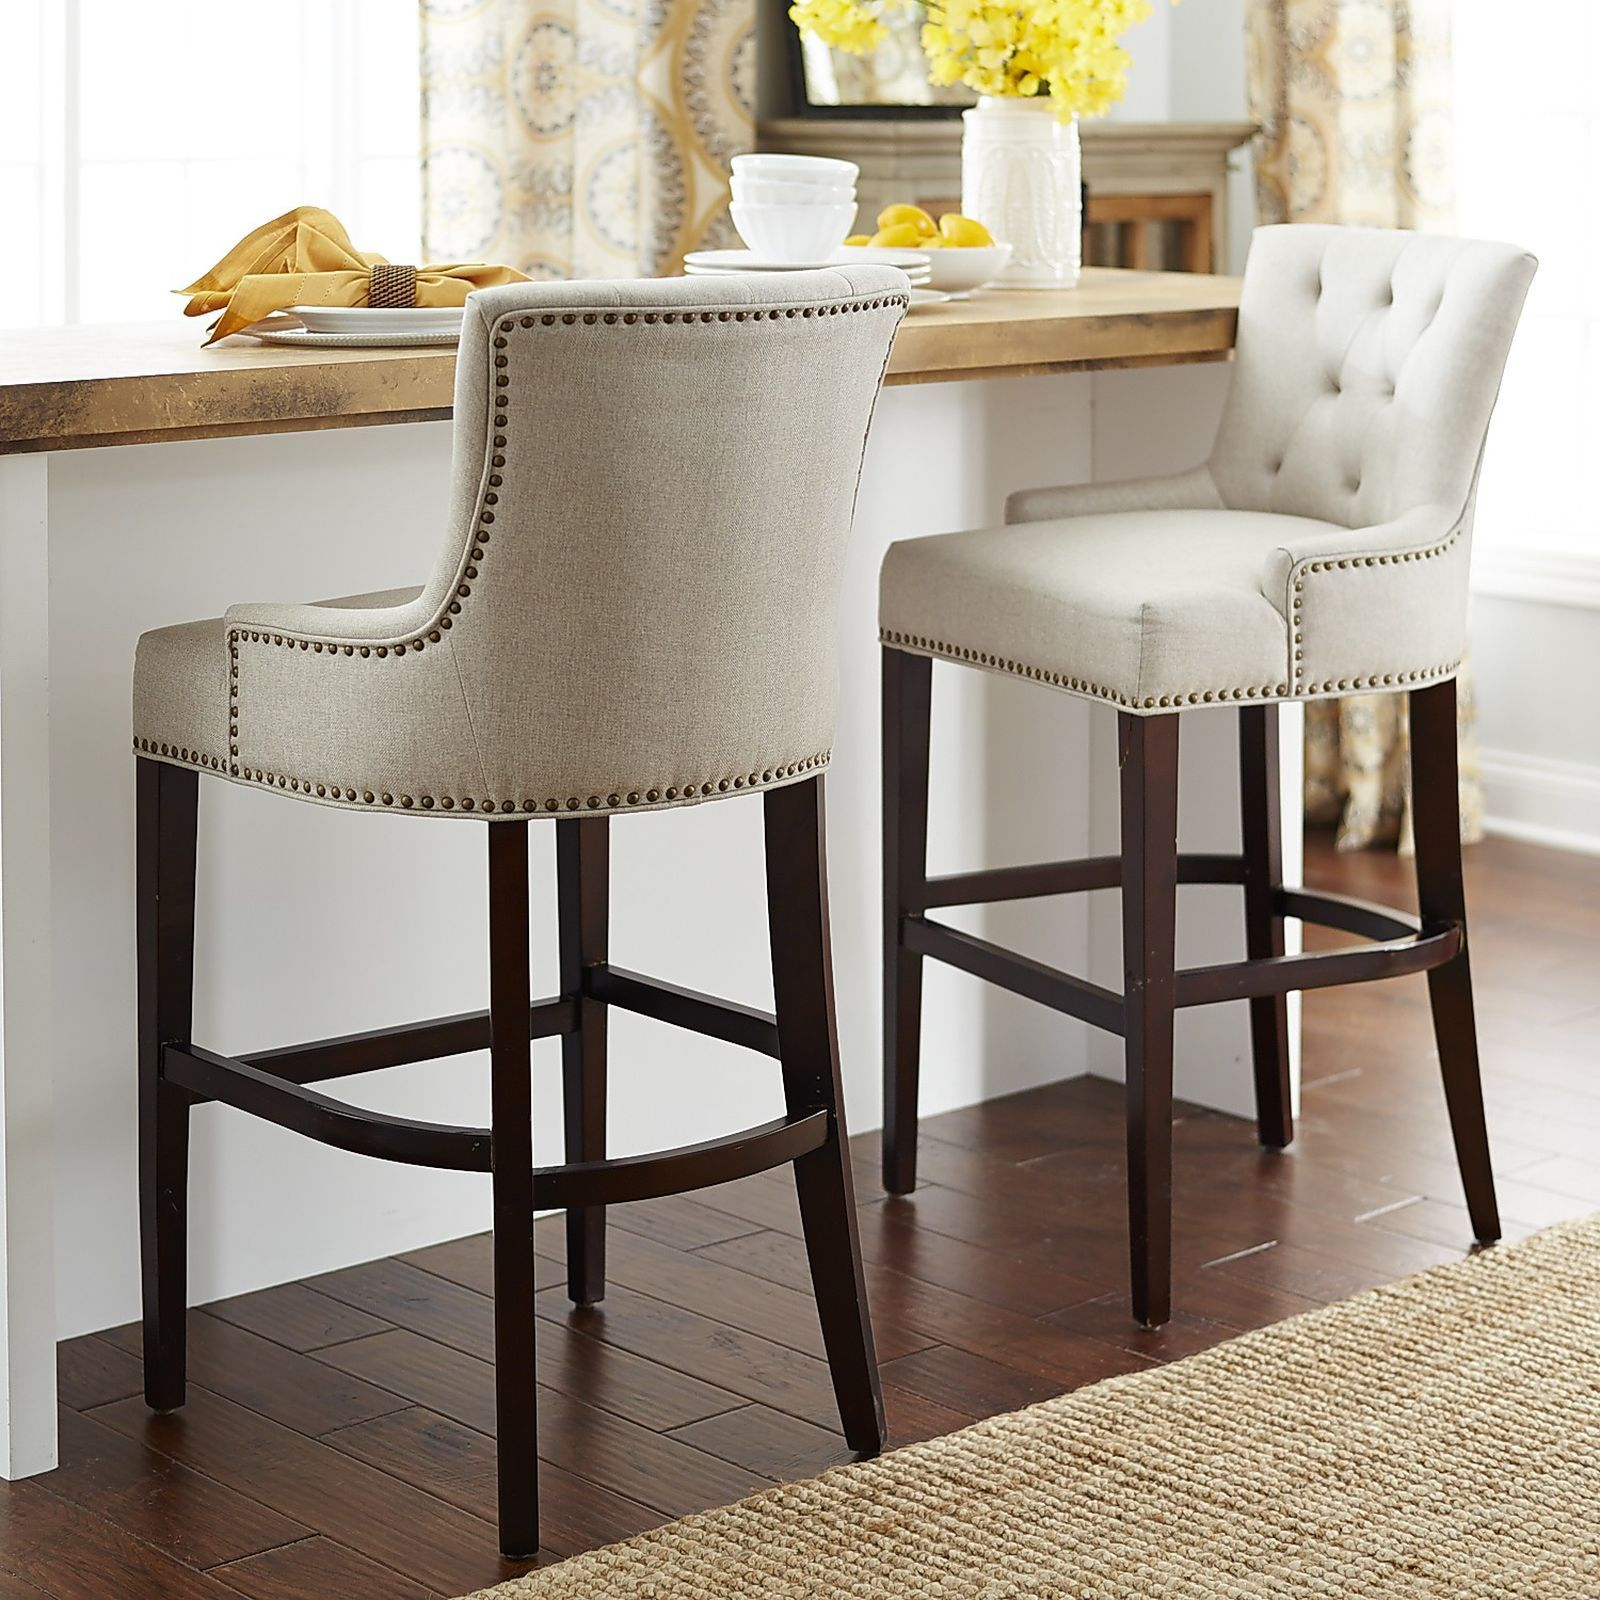 Ava flax counter bar stool ava stools and elegant Counter seating